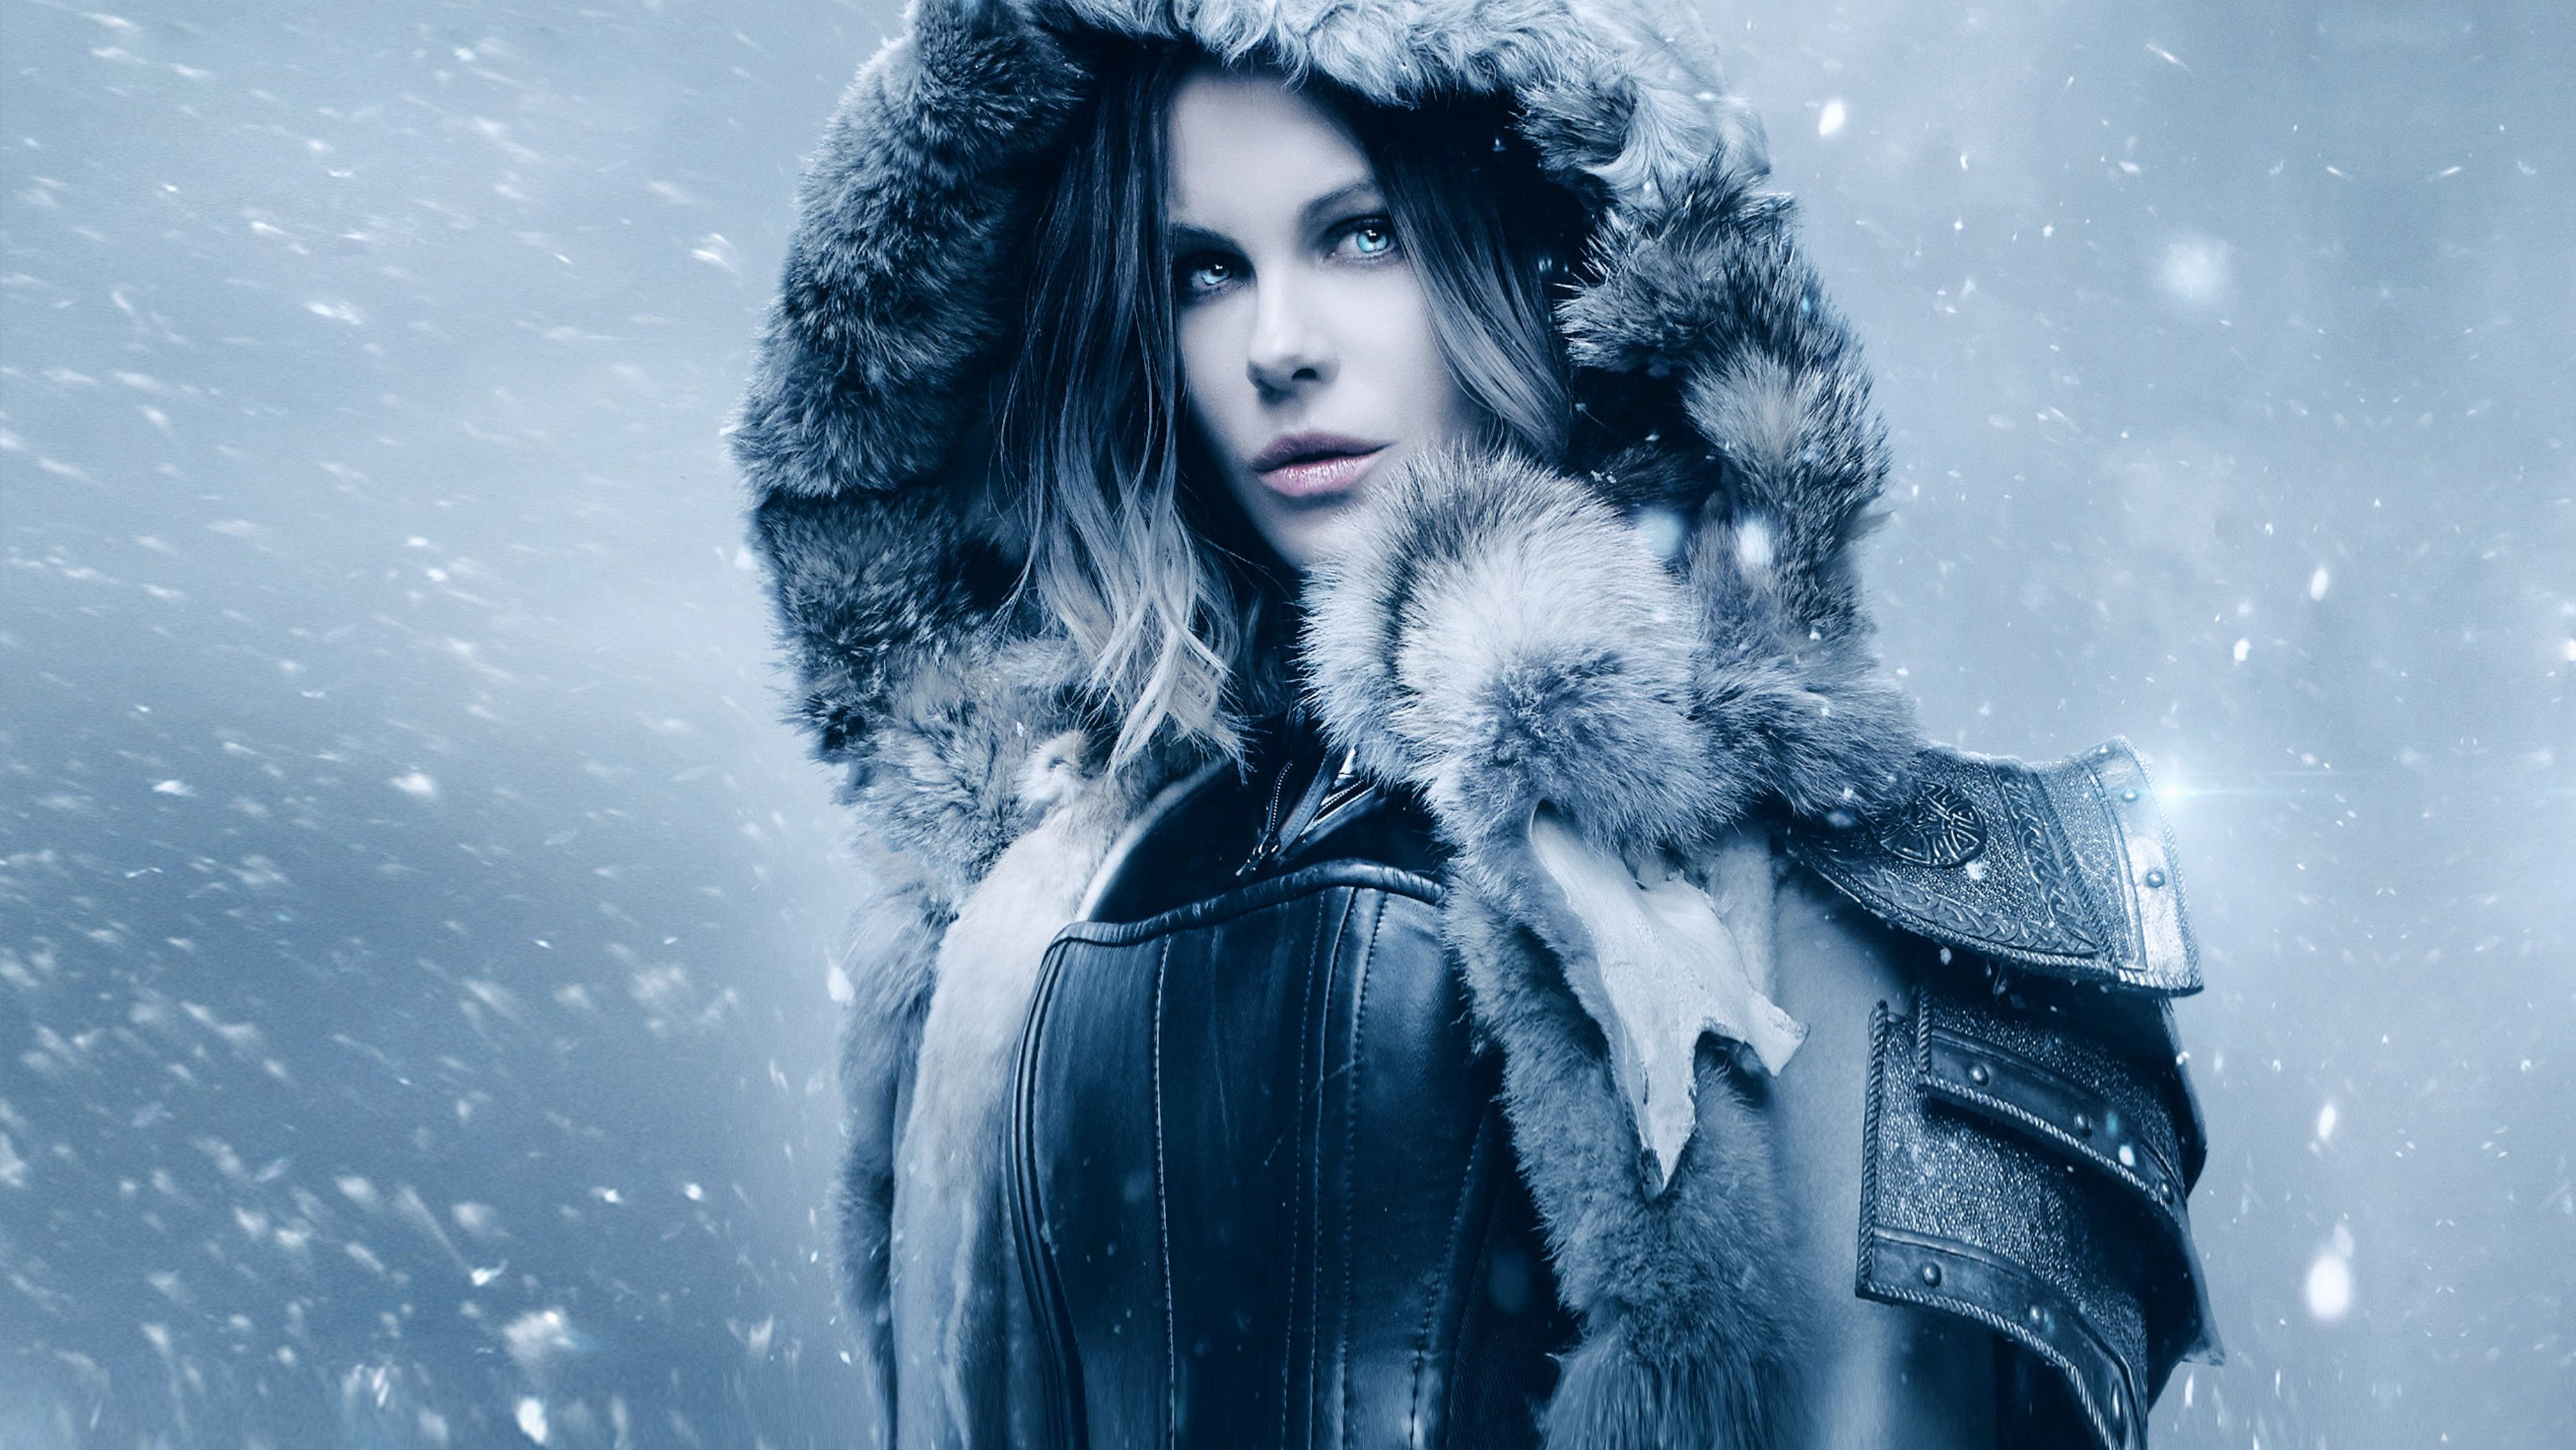 Res 3700x2082 Hd Wallpaper Background Image Id 750422 Underworld Kate Beckinsale Kate Beckinsale Underworld Movie Series